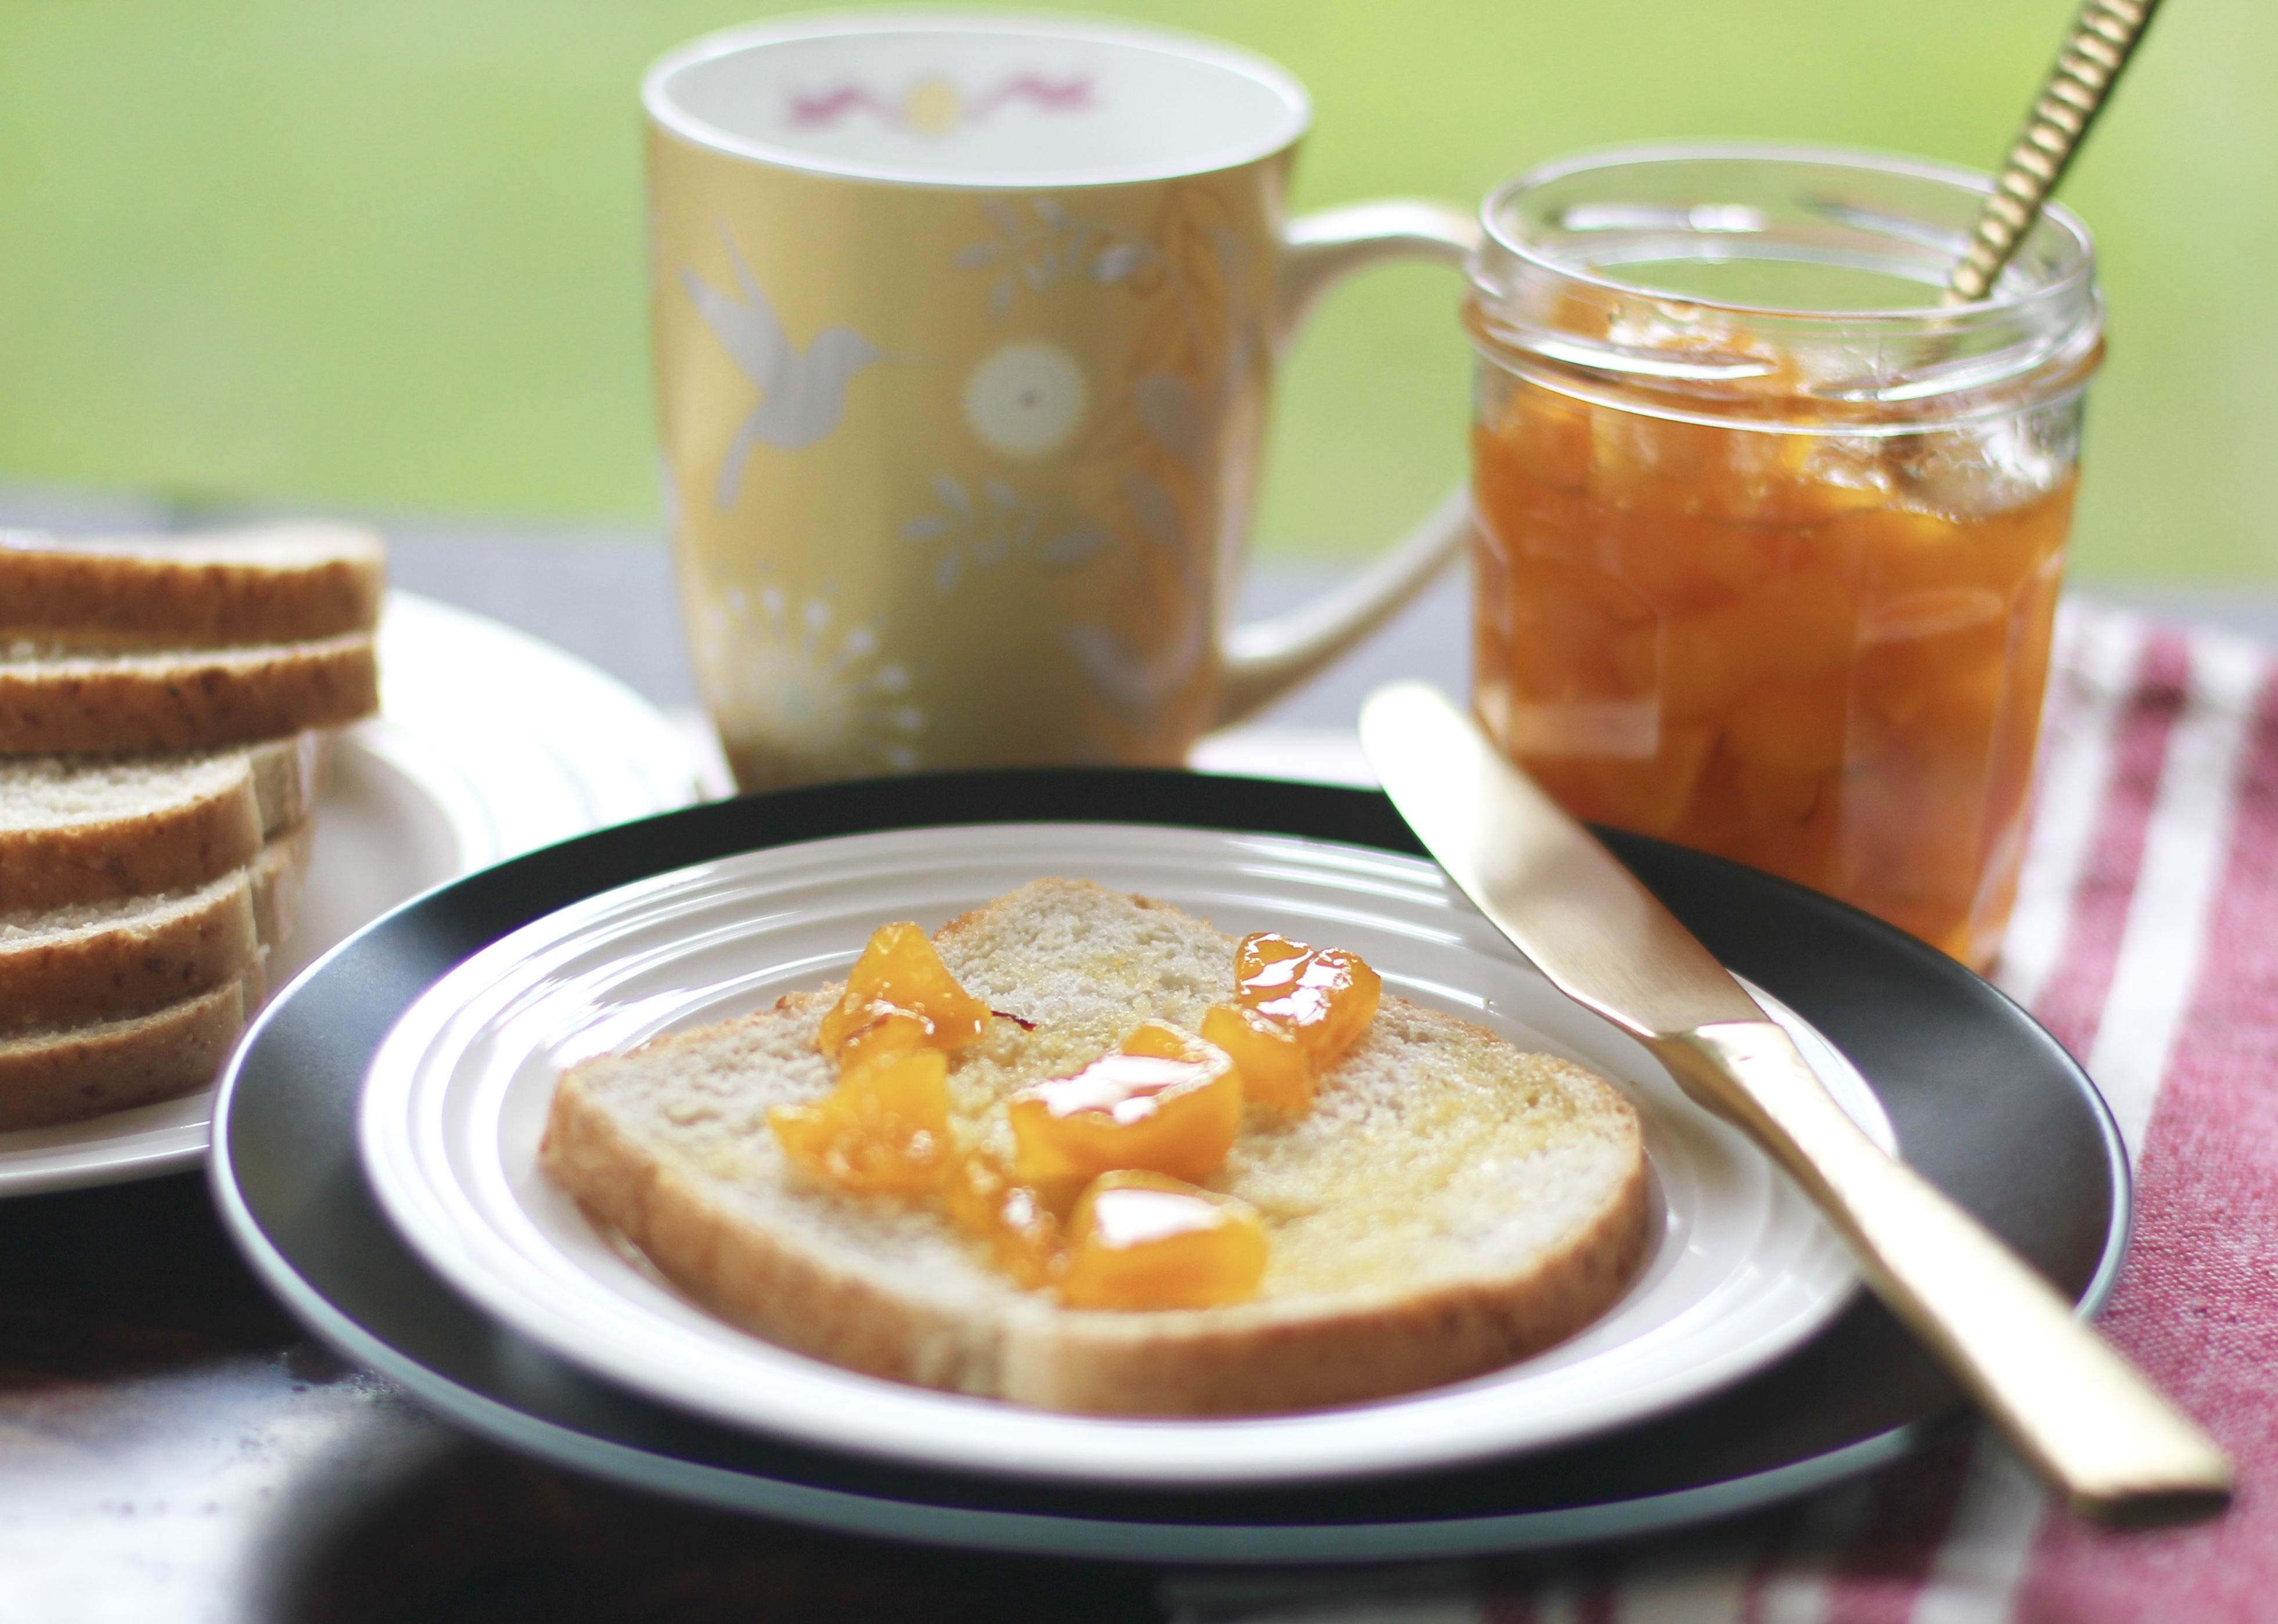 mango jam on piece of toast on a white plate with a knife